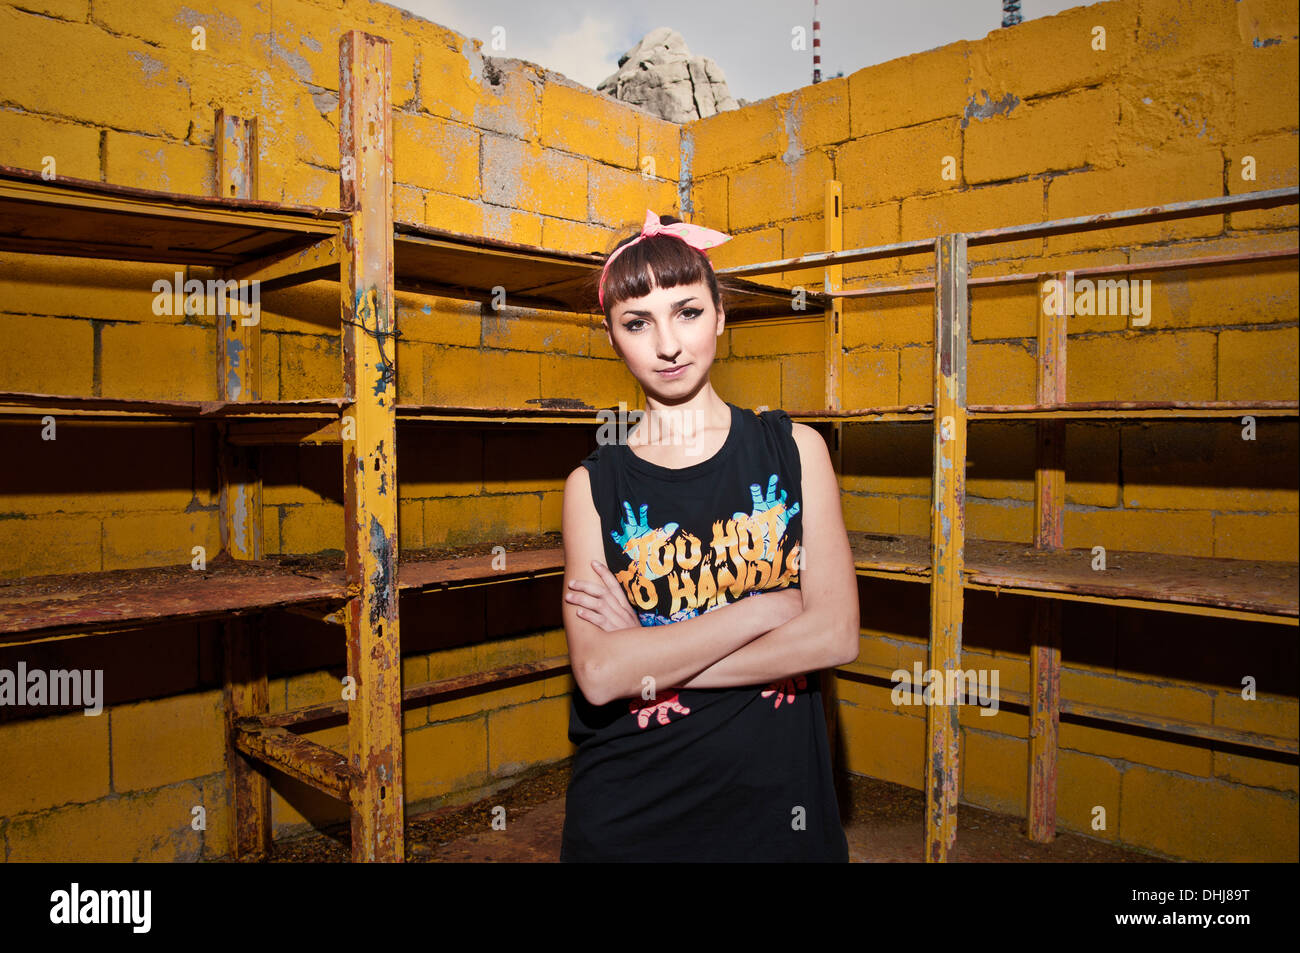 Hip hop style - Stock Image